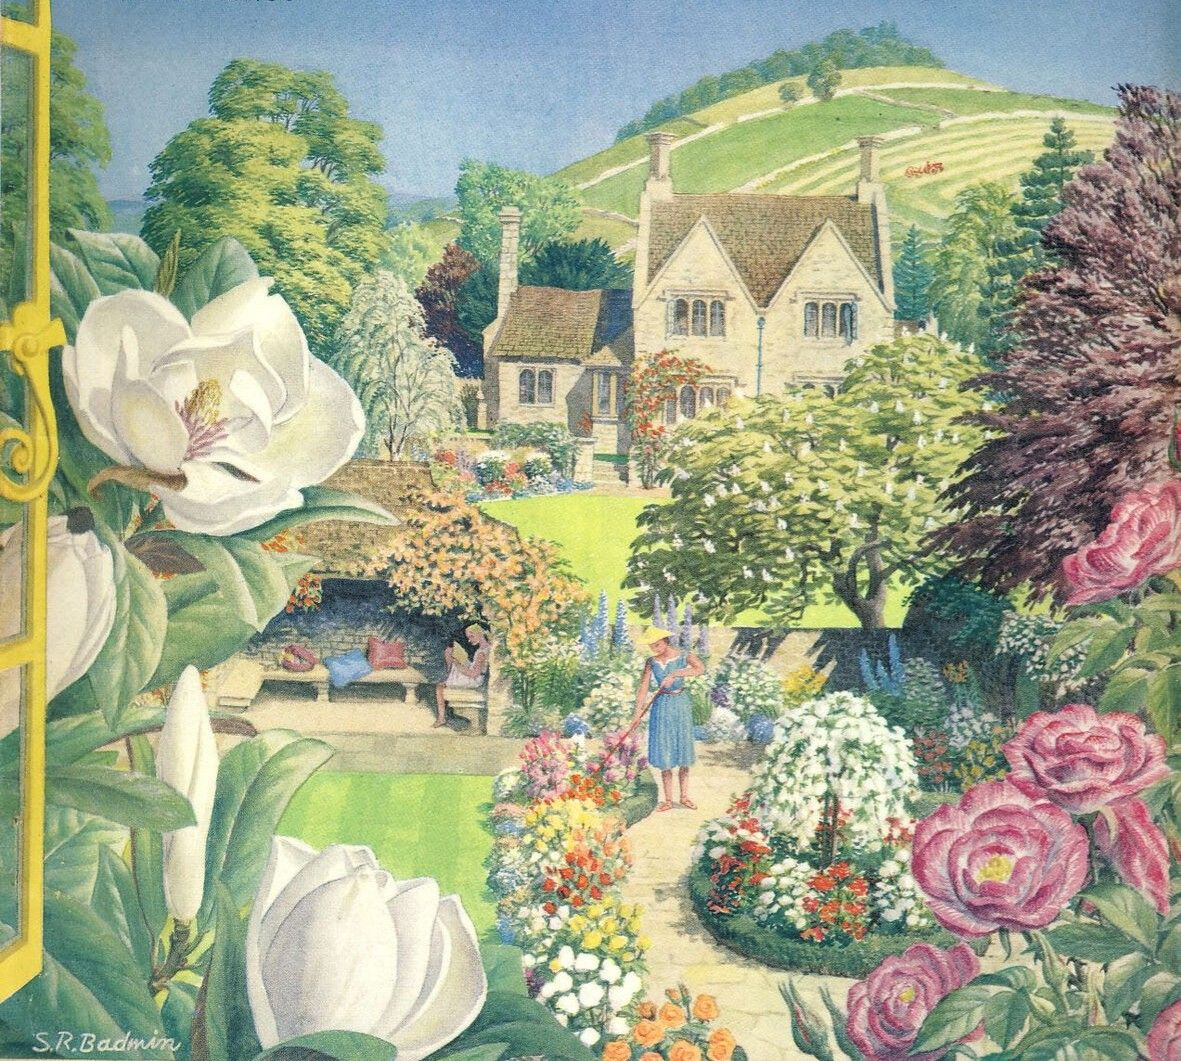 Pin By Sue Leech On S R Badmin In 2020 Cottage Garden Painting Art